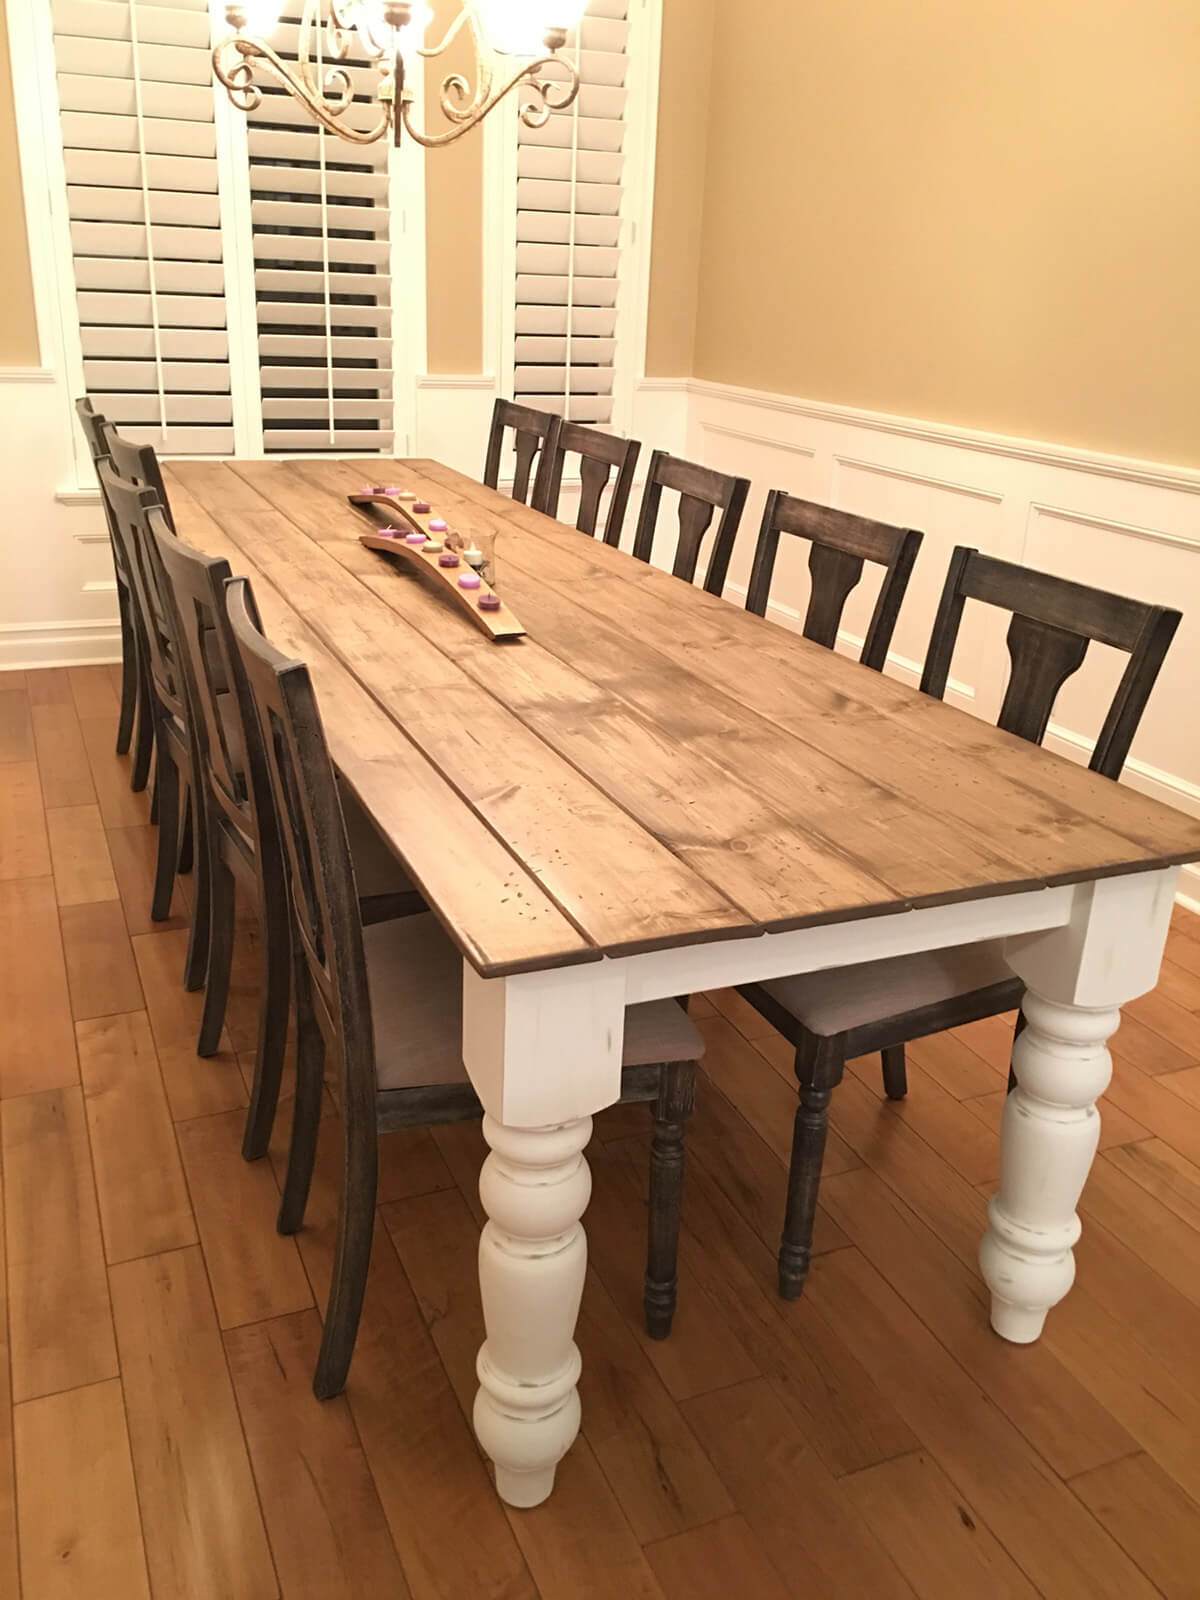 ideas see bloggers rustic instagram brittanyork dining by room likes this photo pin